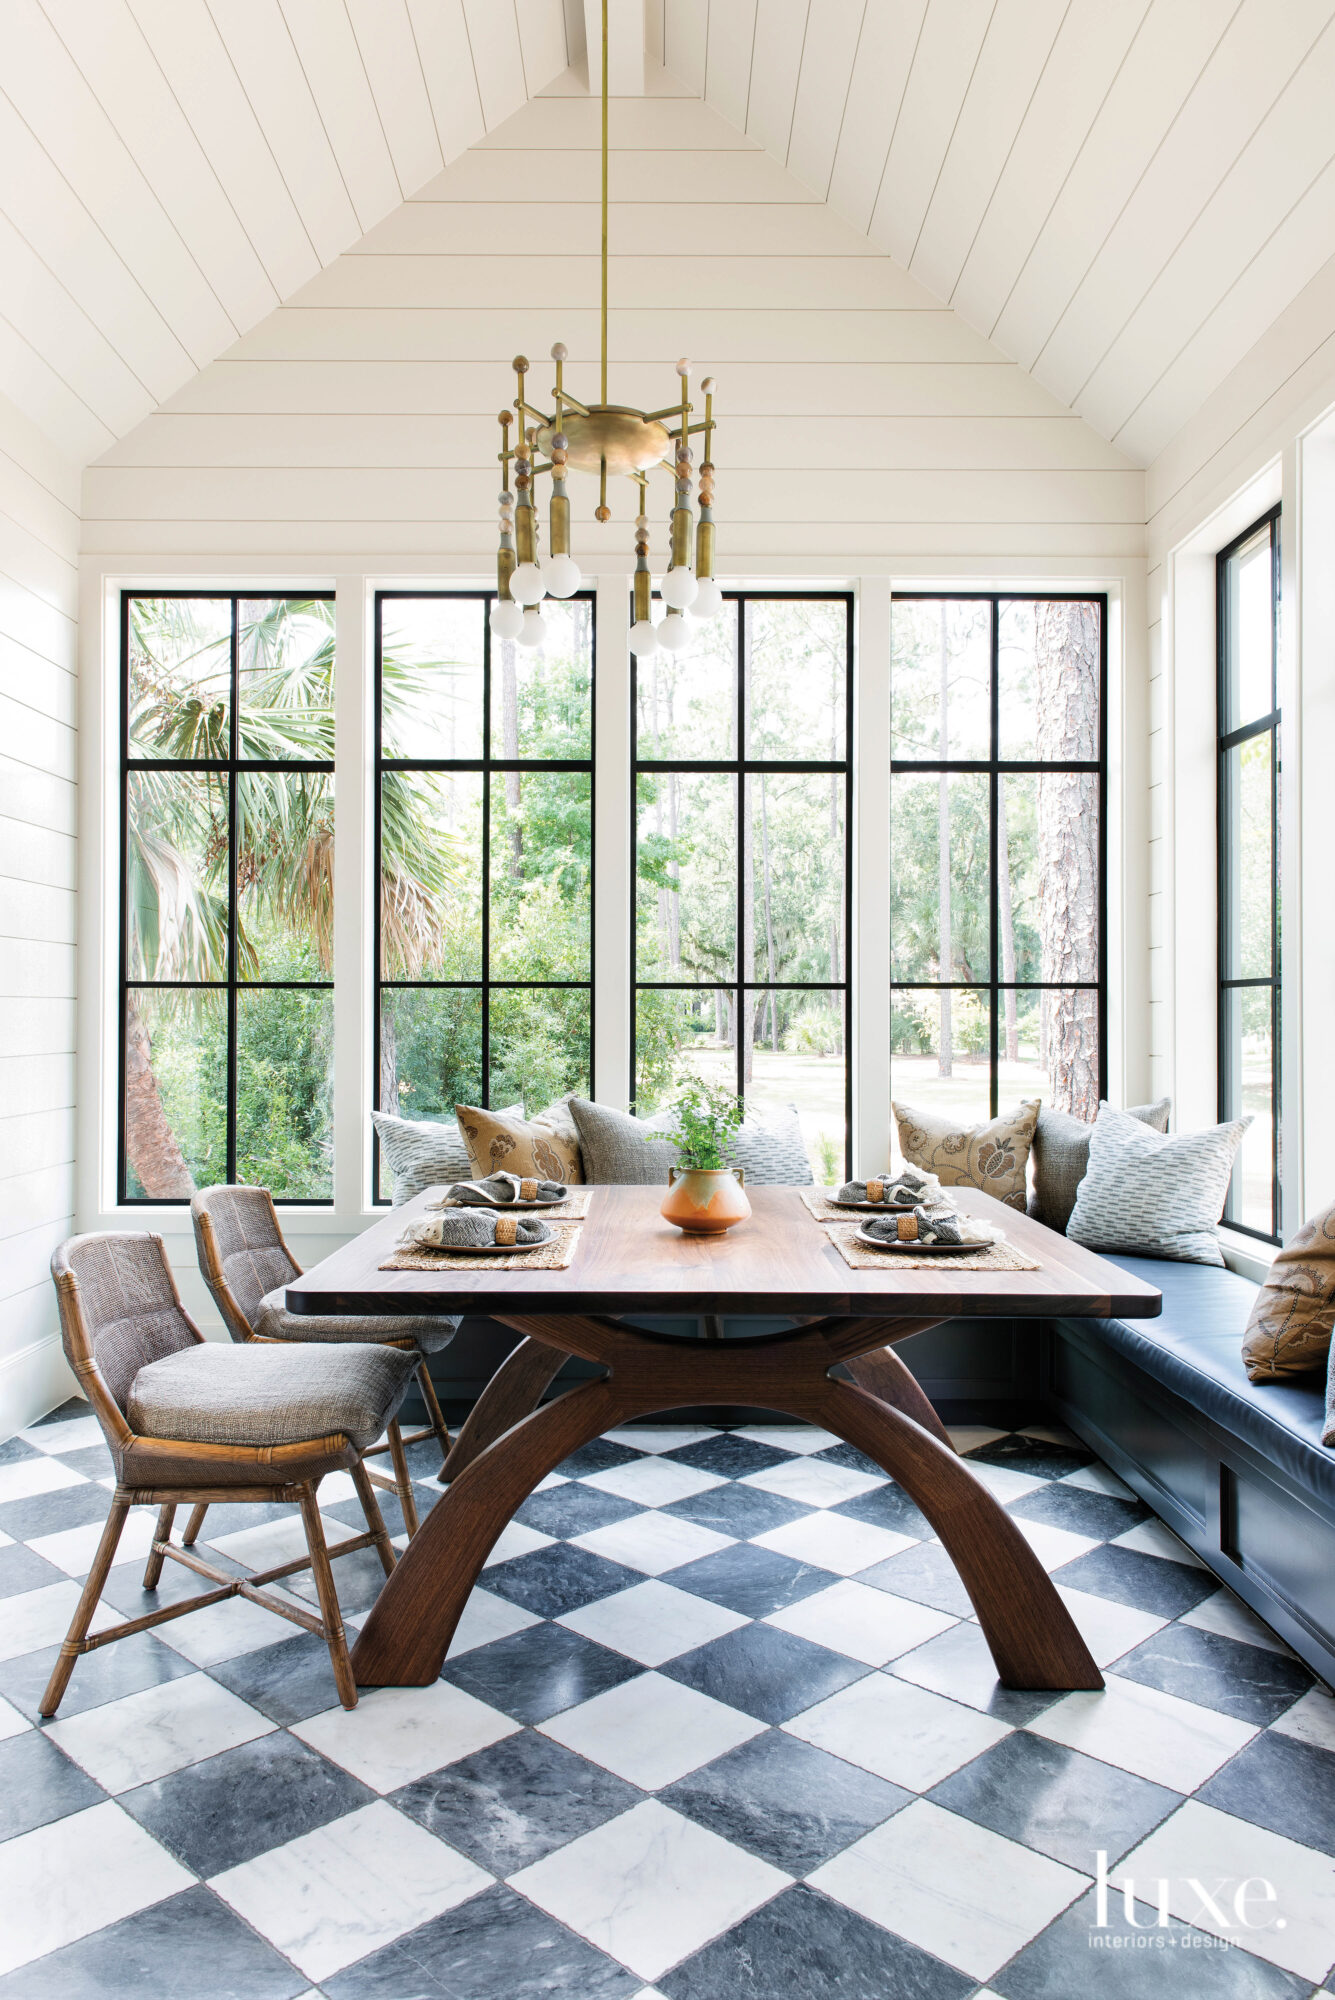 Dining table surrounded by windows...